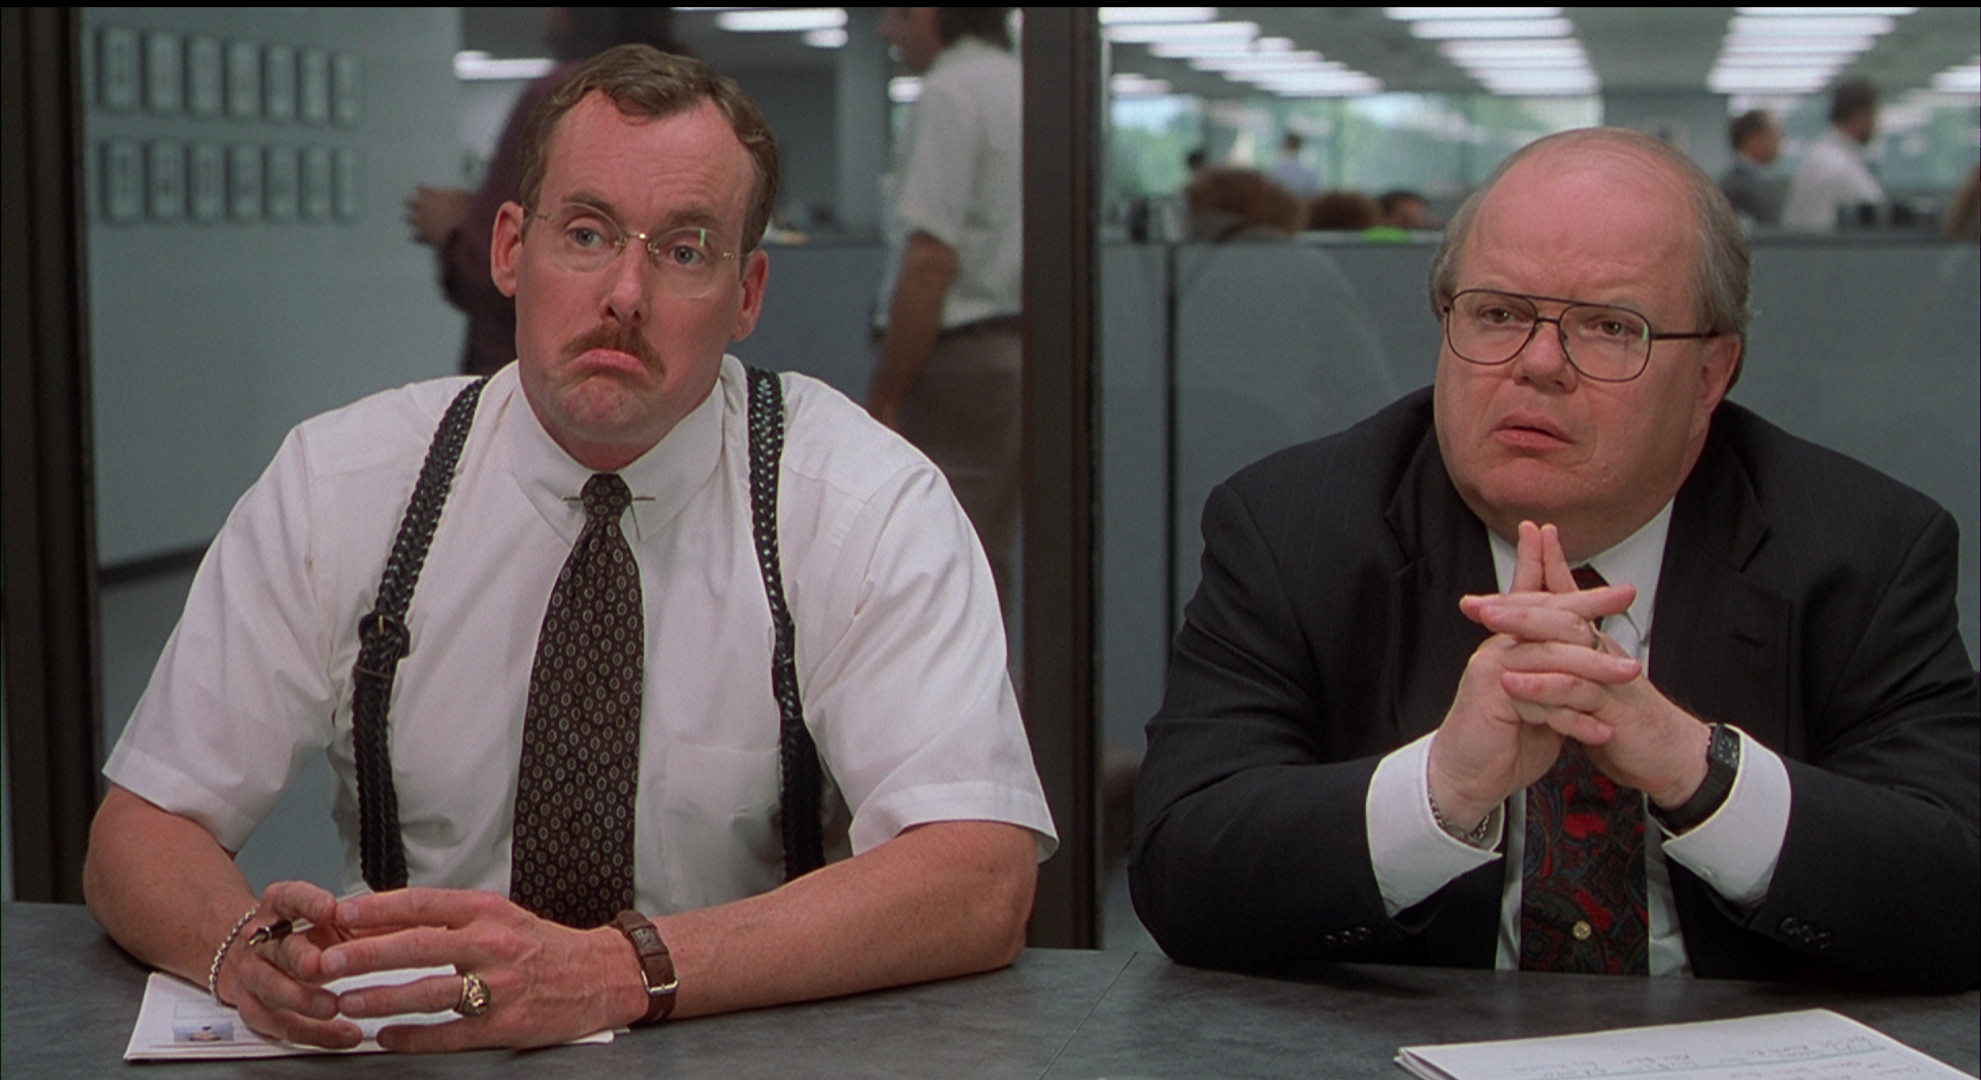 office space photos. Office Space Photos Q